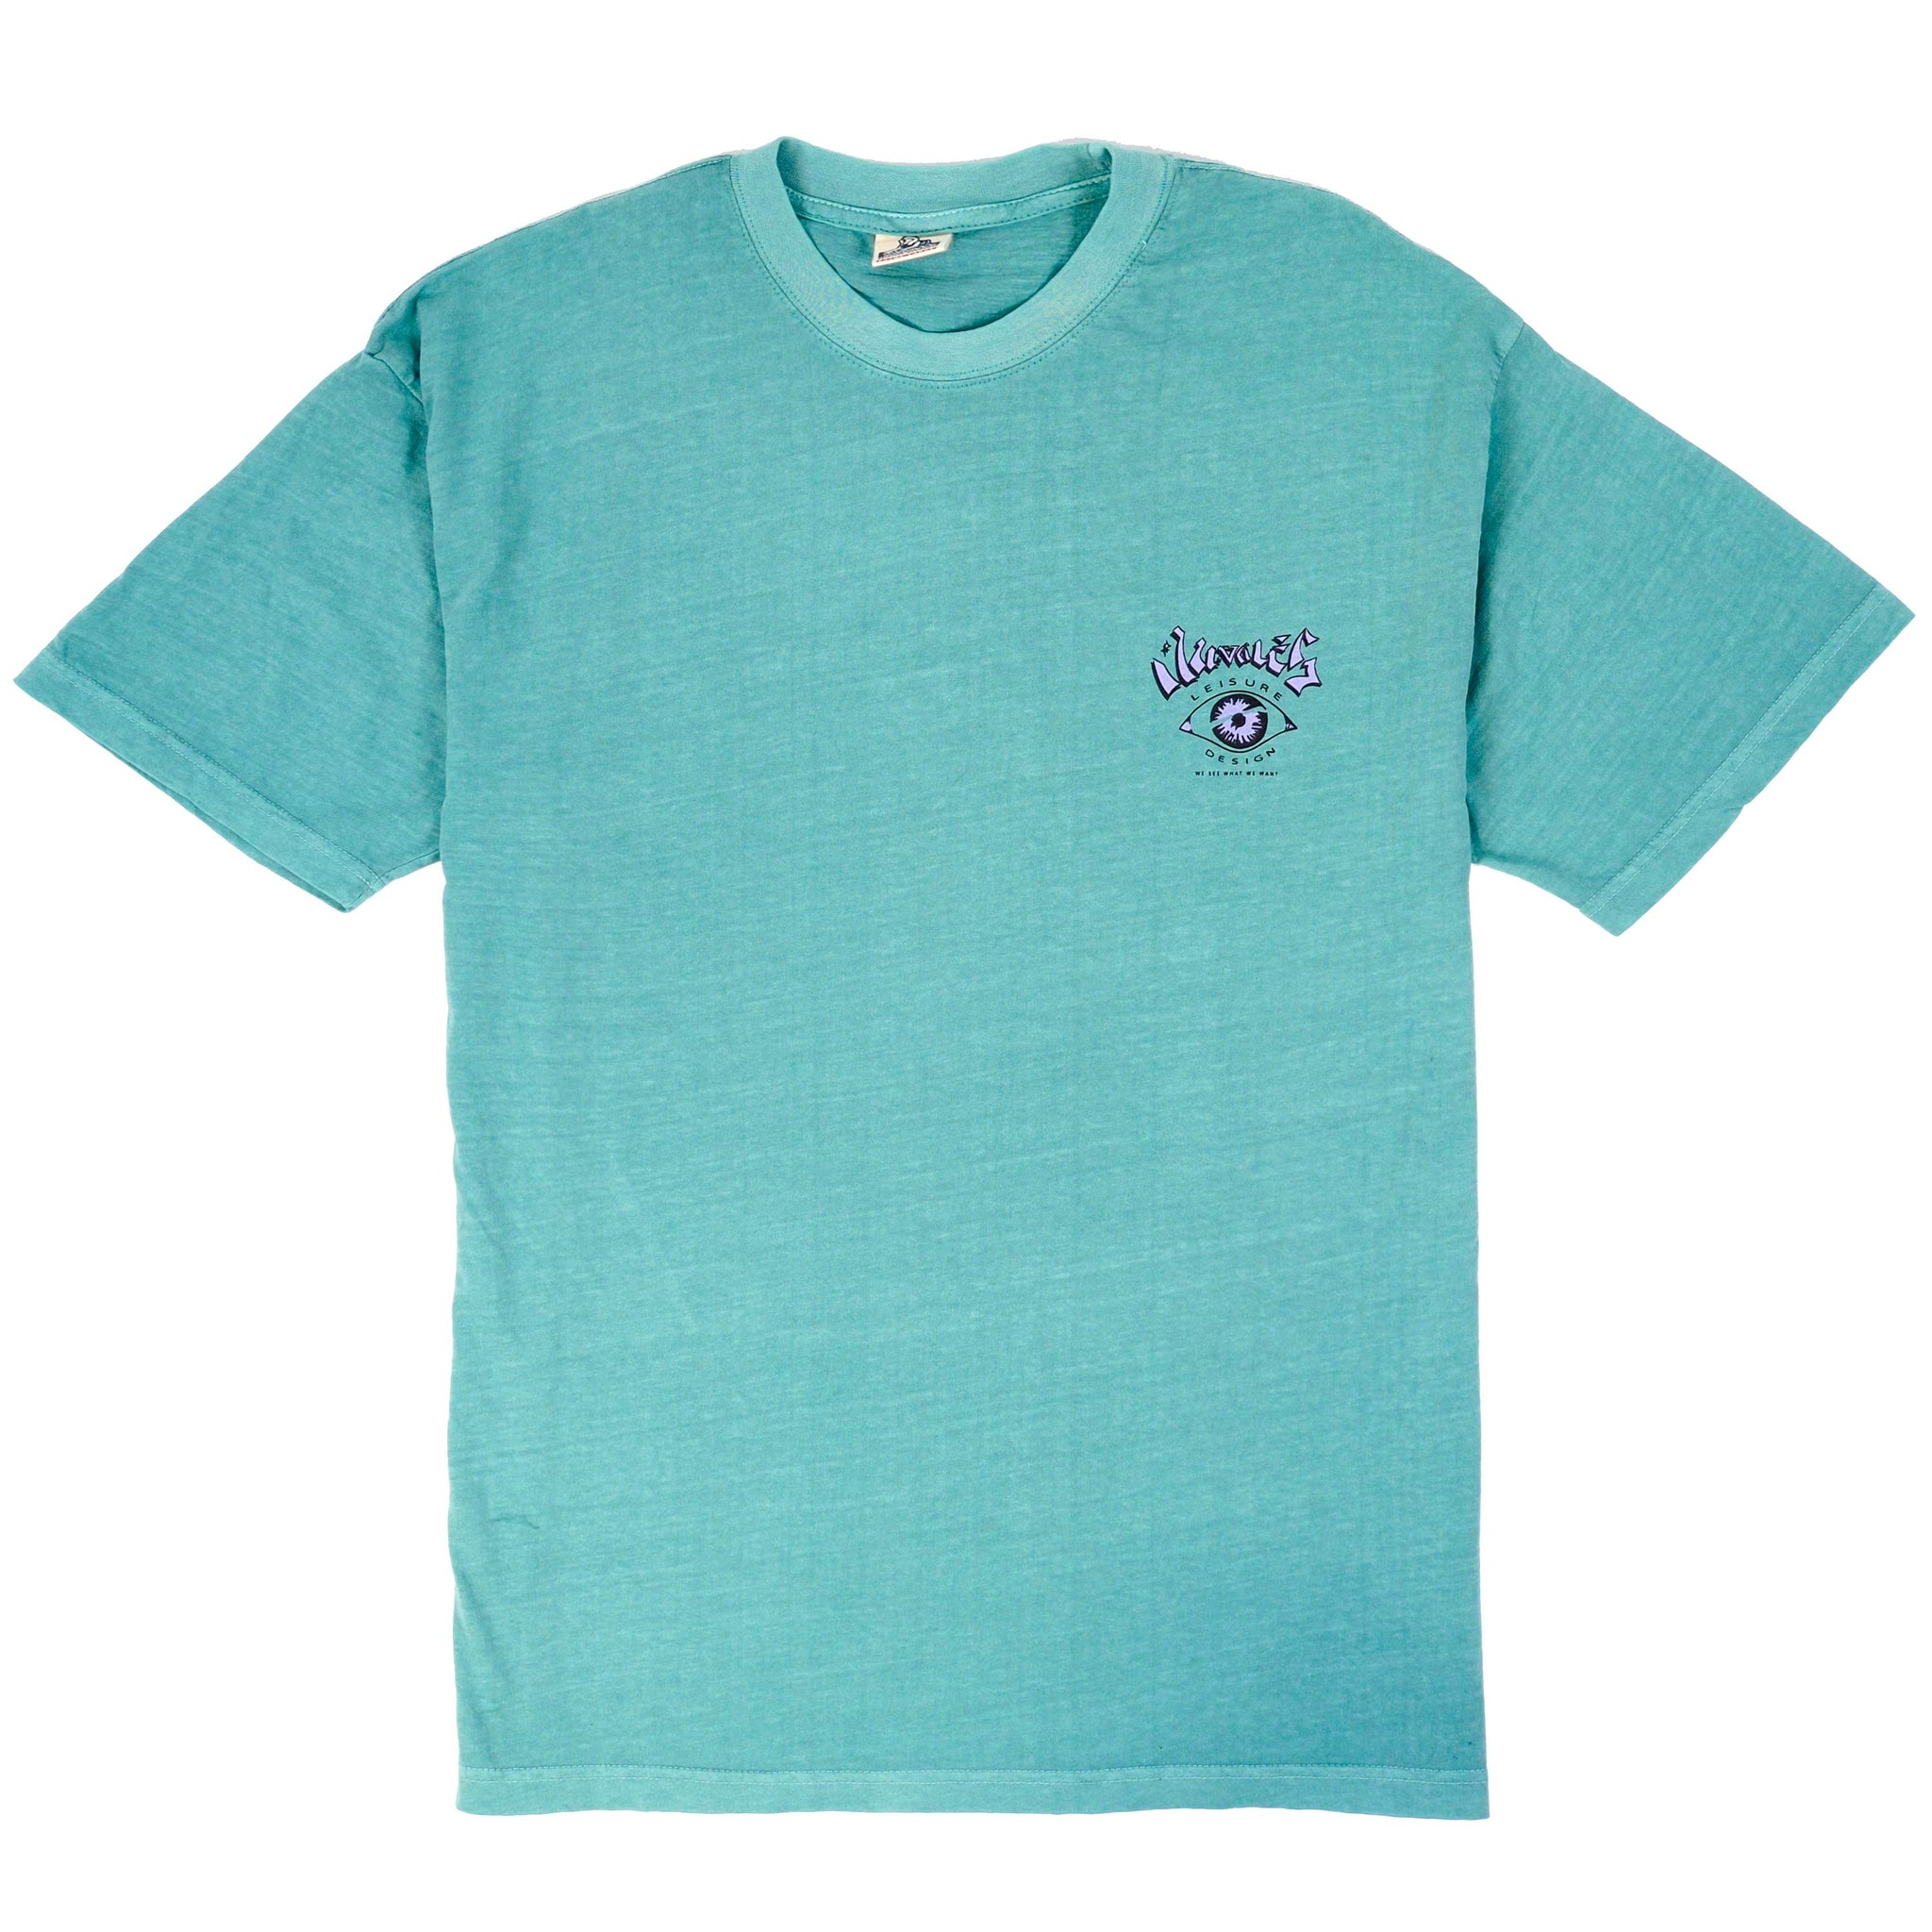 LEISURE DESIGN SS TEE - SEAFOAM